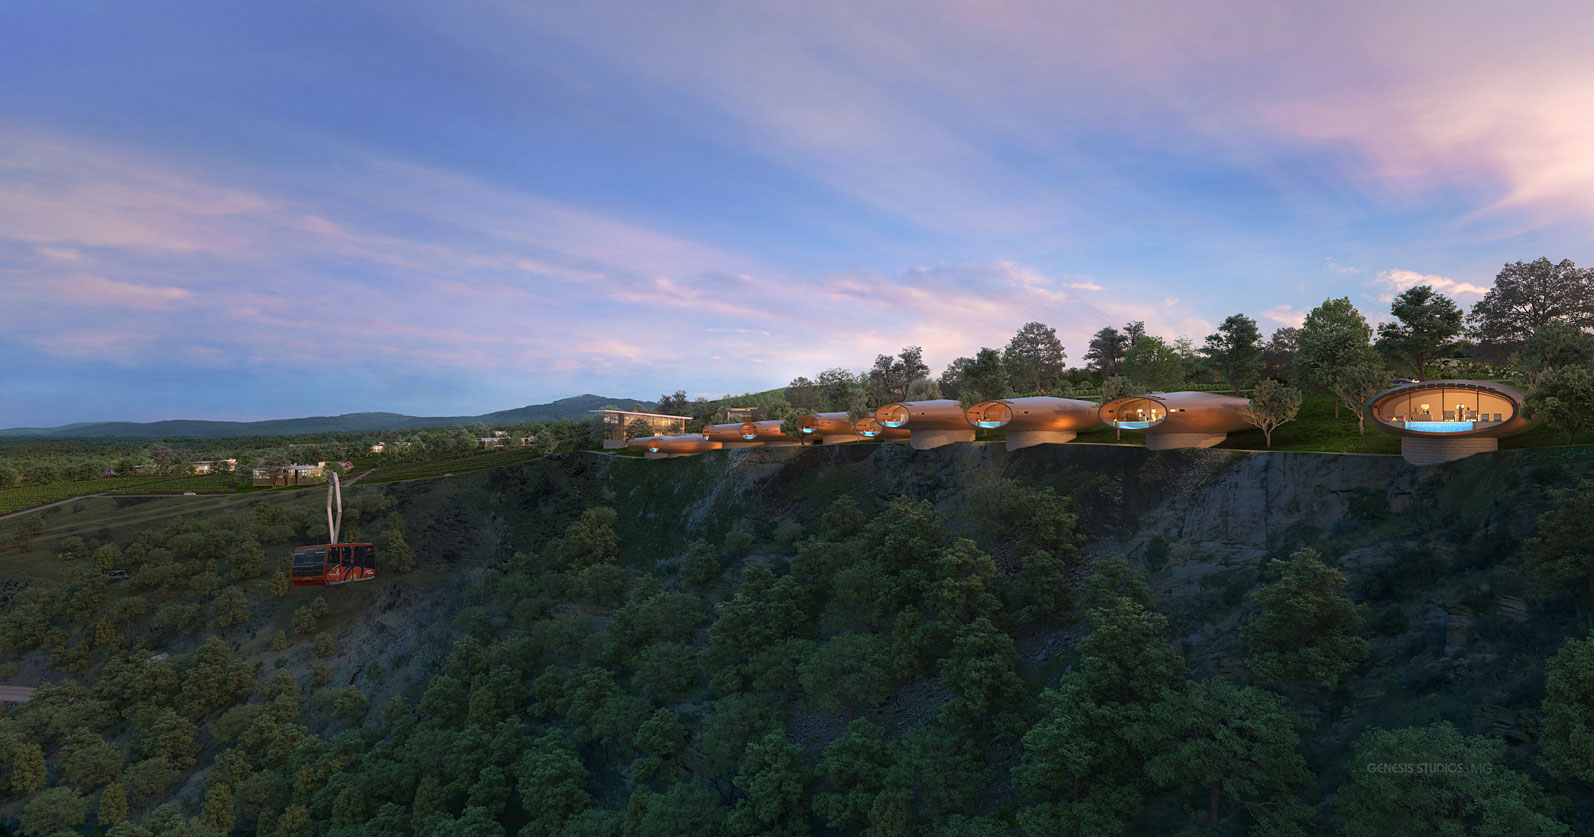 717188 Digital Photorealistic Architectural Renderings of The Vines San Miguel from an Aerial View for CallisonRTKL